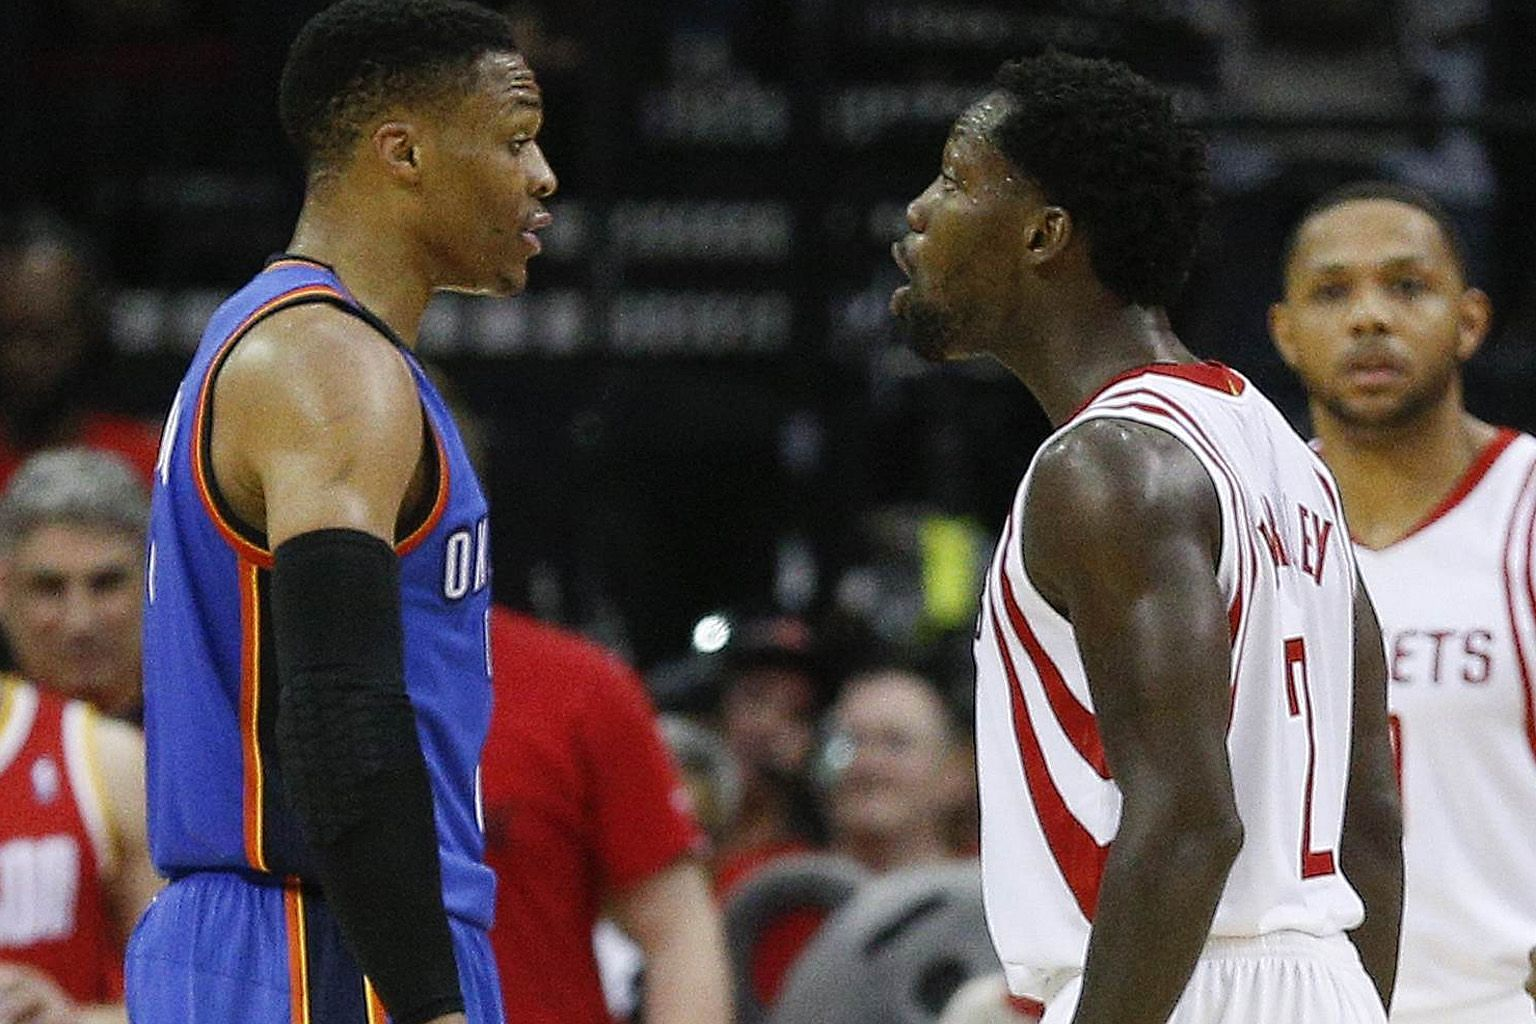 Oklahoma City Thunder's Russell Westbrook (left) and Houston Rockets' Patrick Beverley exchanging words during Game Five. Westbrook had 47 points but the Rockets won 105-99 to clinch the series 4-1.